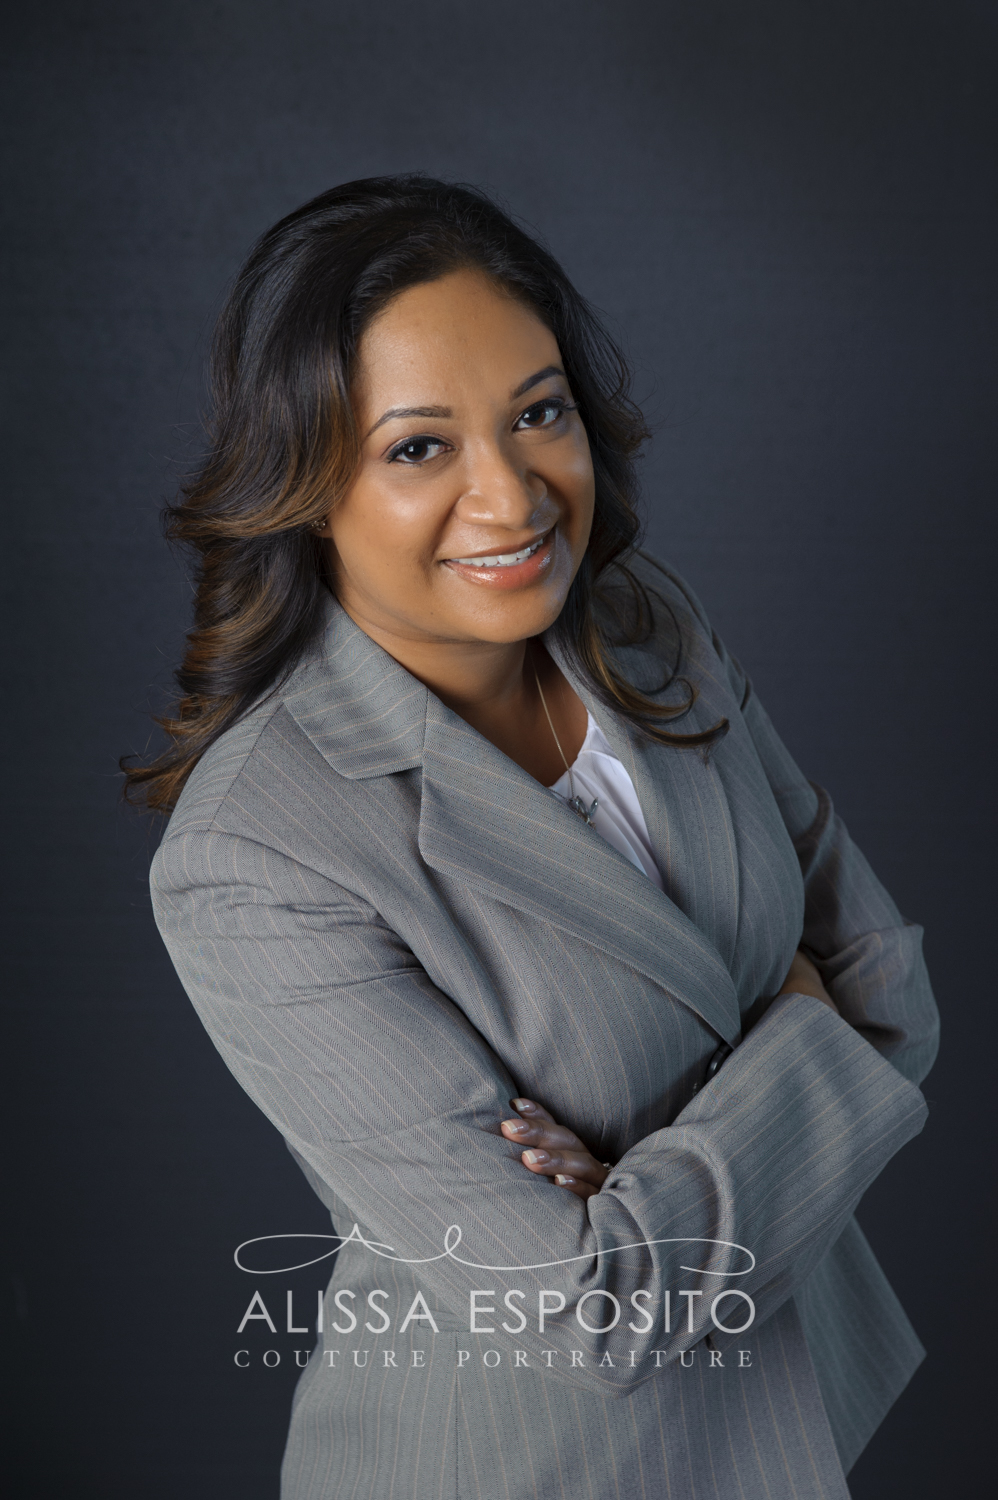 Las Vegas Corporate Headshot Photographer Alissa Esposito Photography | www.alissaesposito.com